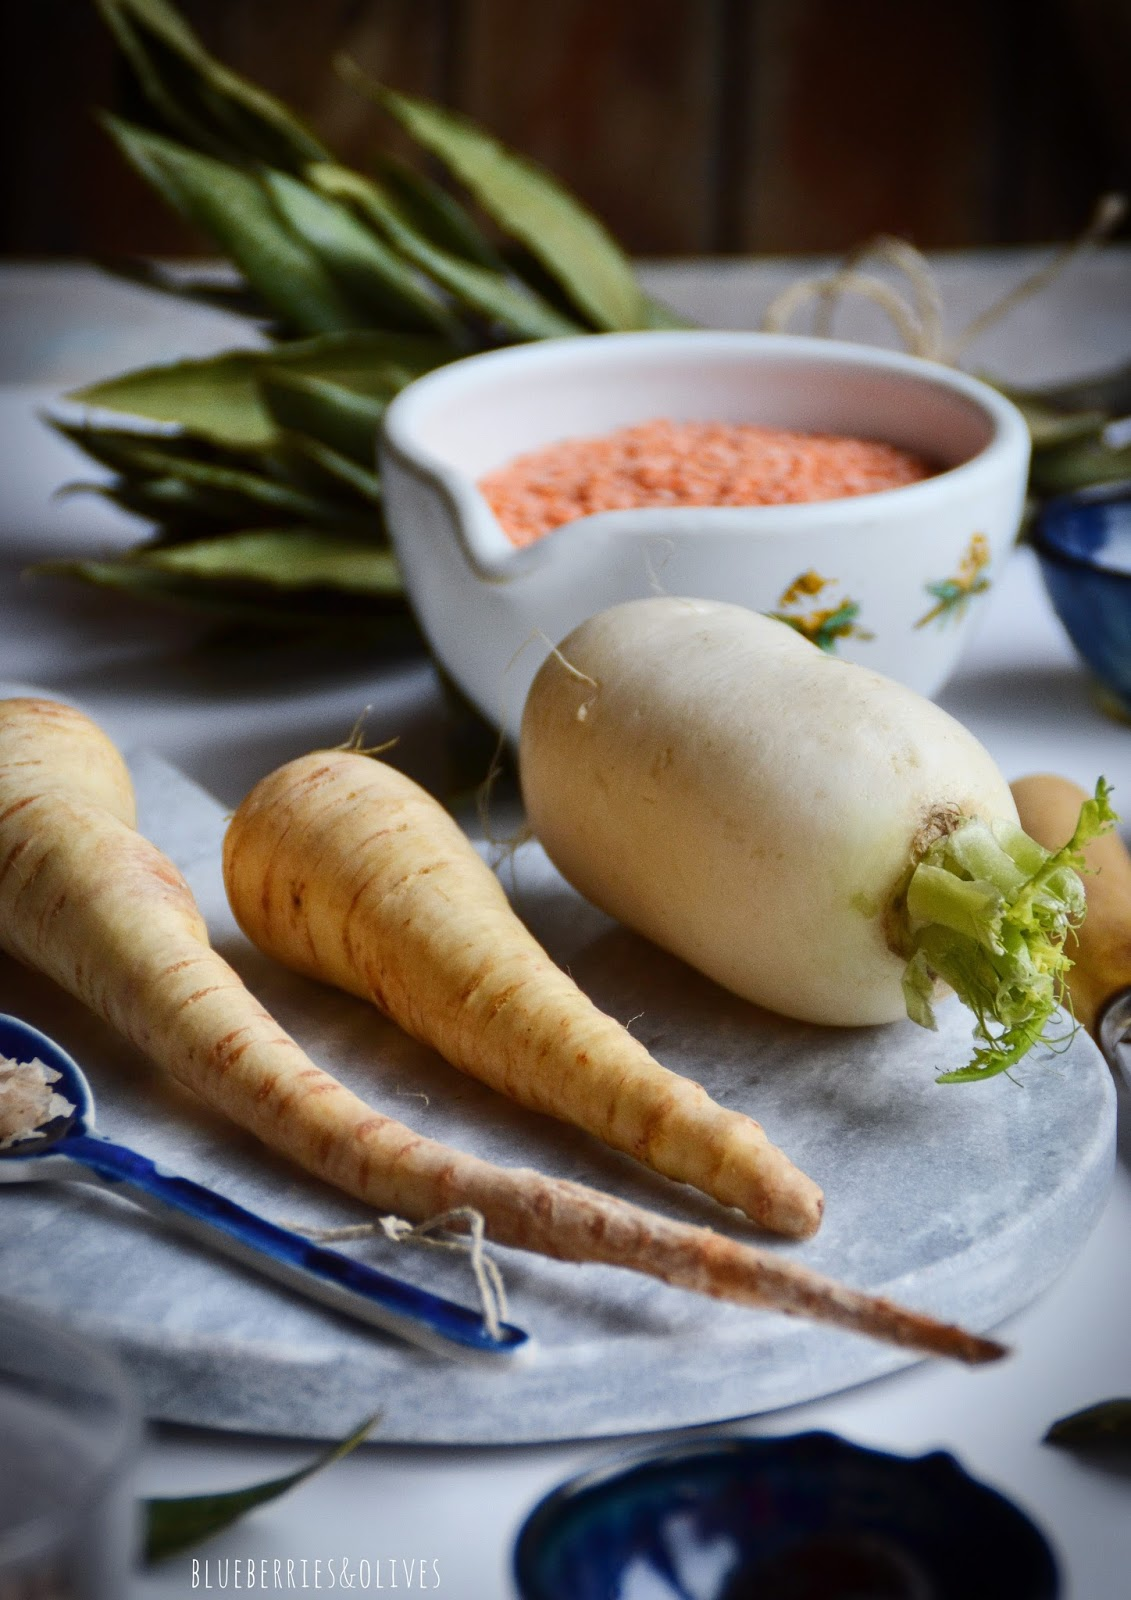 INGREDIENTS PARSNIPS, TURNIP, SALT FLAKES IN BLUE CERAMIC SPOON